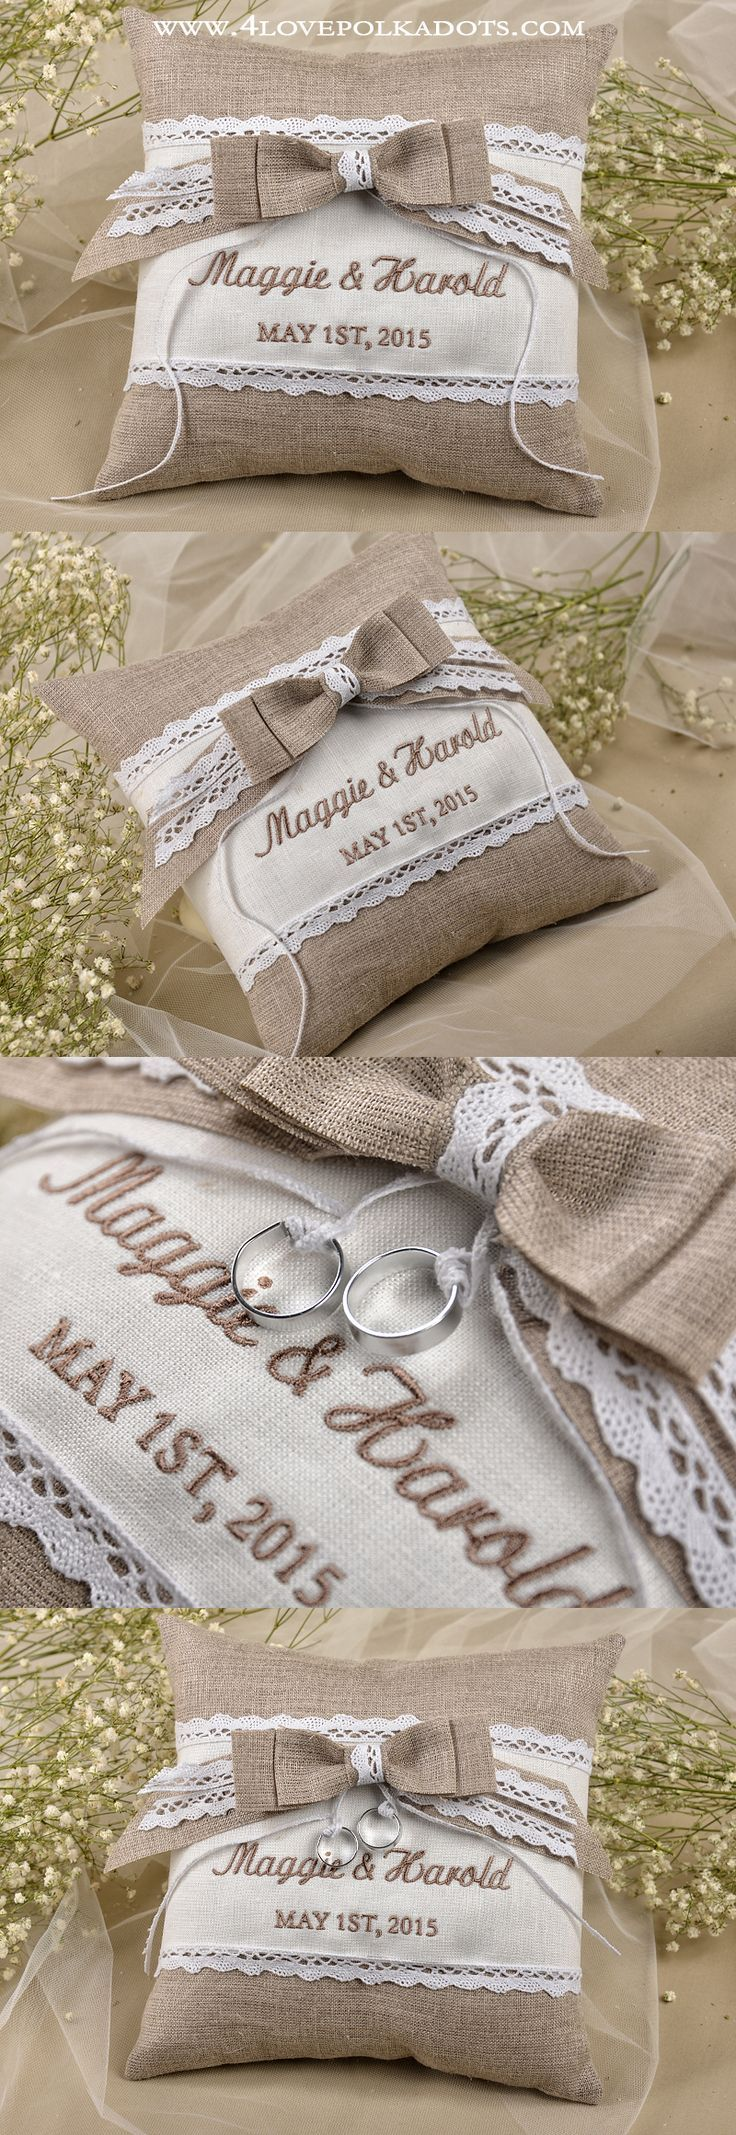 Rustic Wedding Ring Pillow #weddingideas #countrywedding #rustic